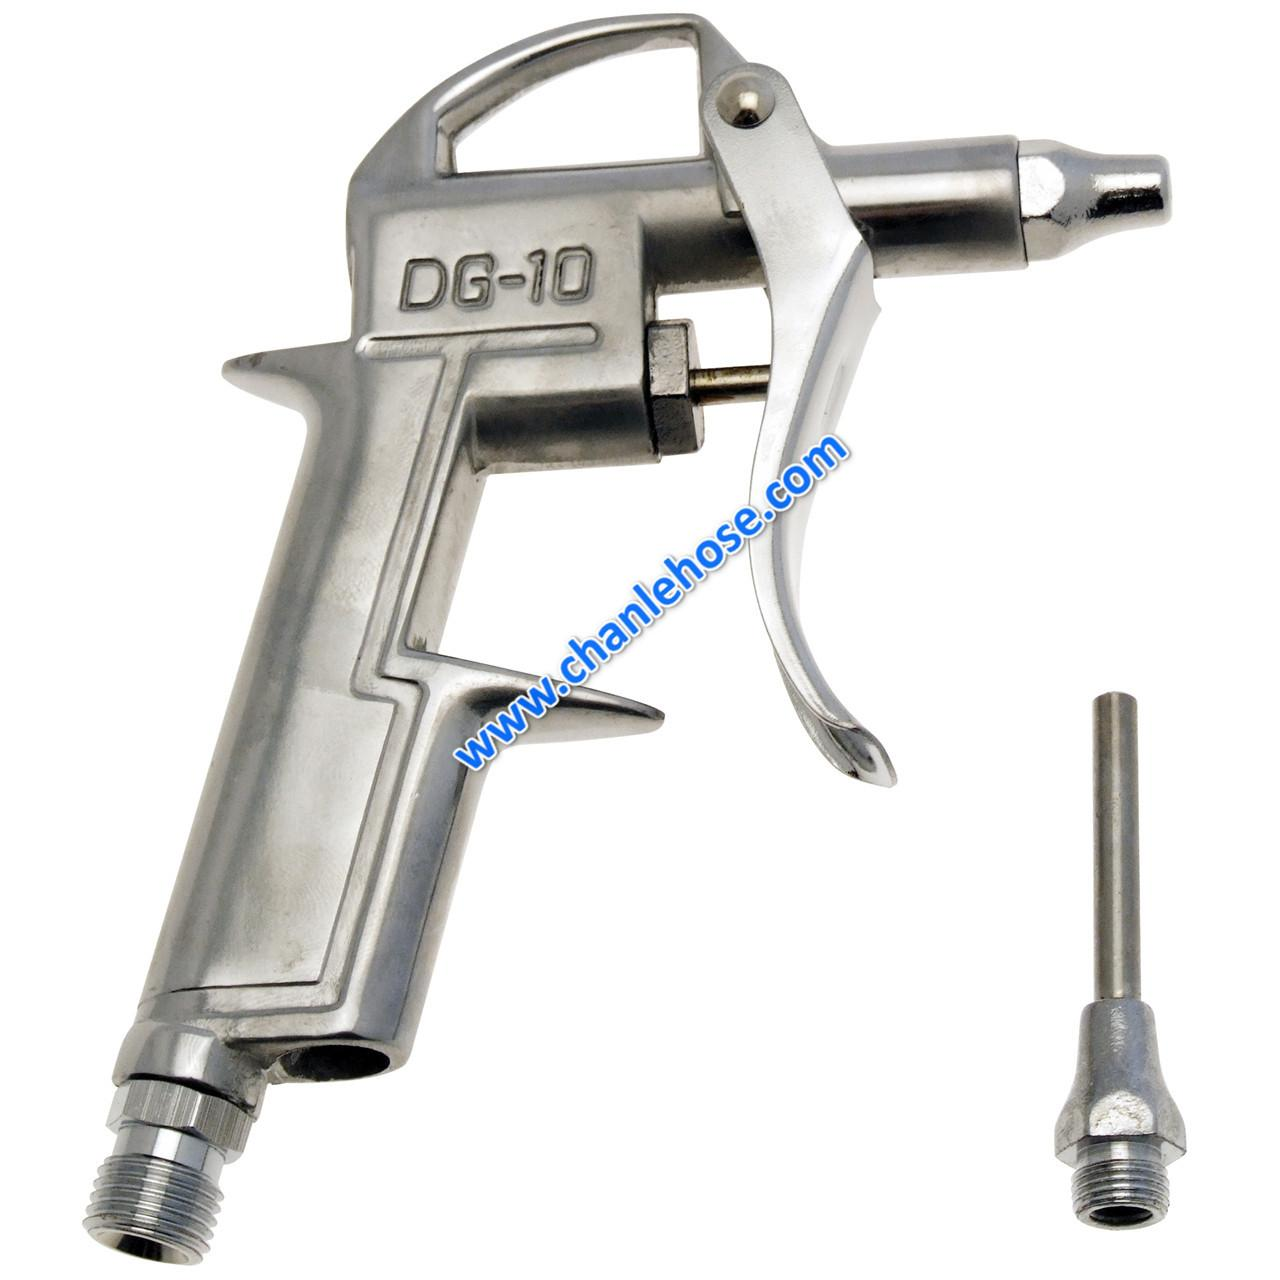 Quality compressed air blow gun, DG-10 metal body, air duster for sale